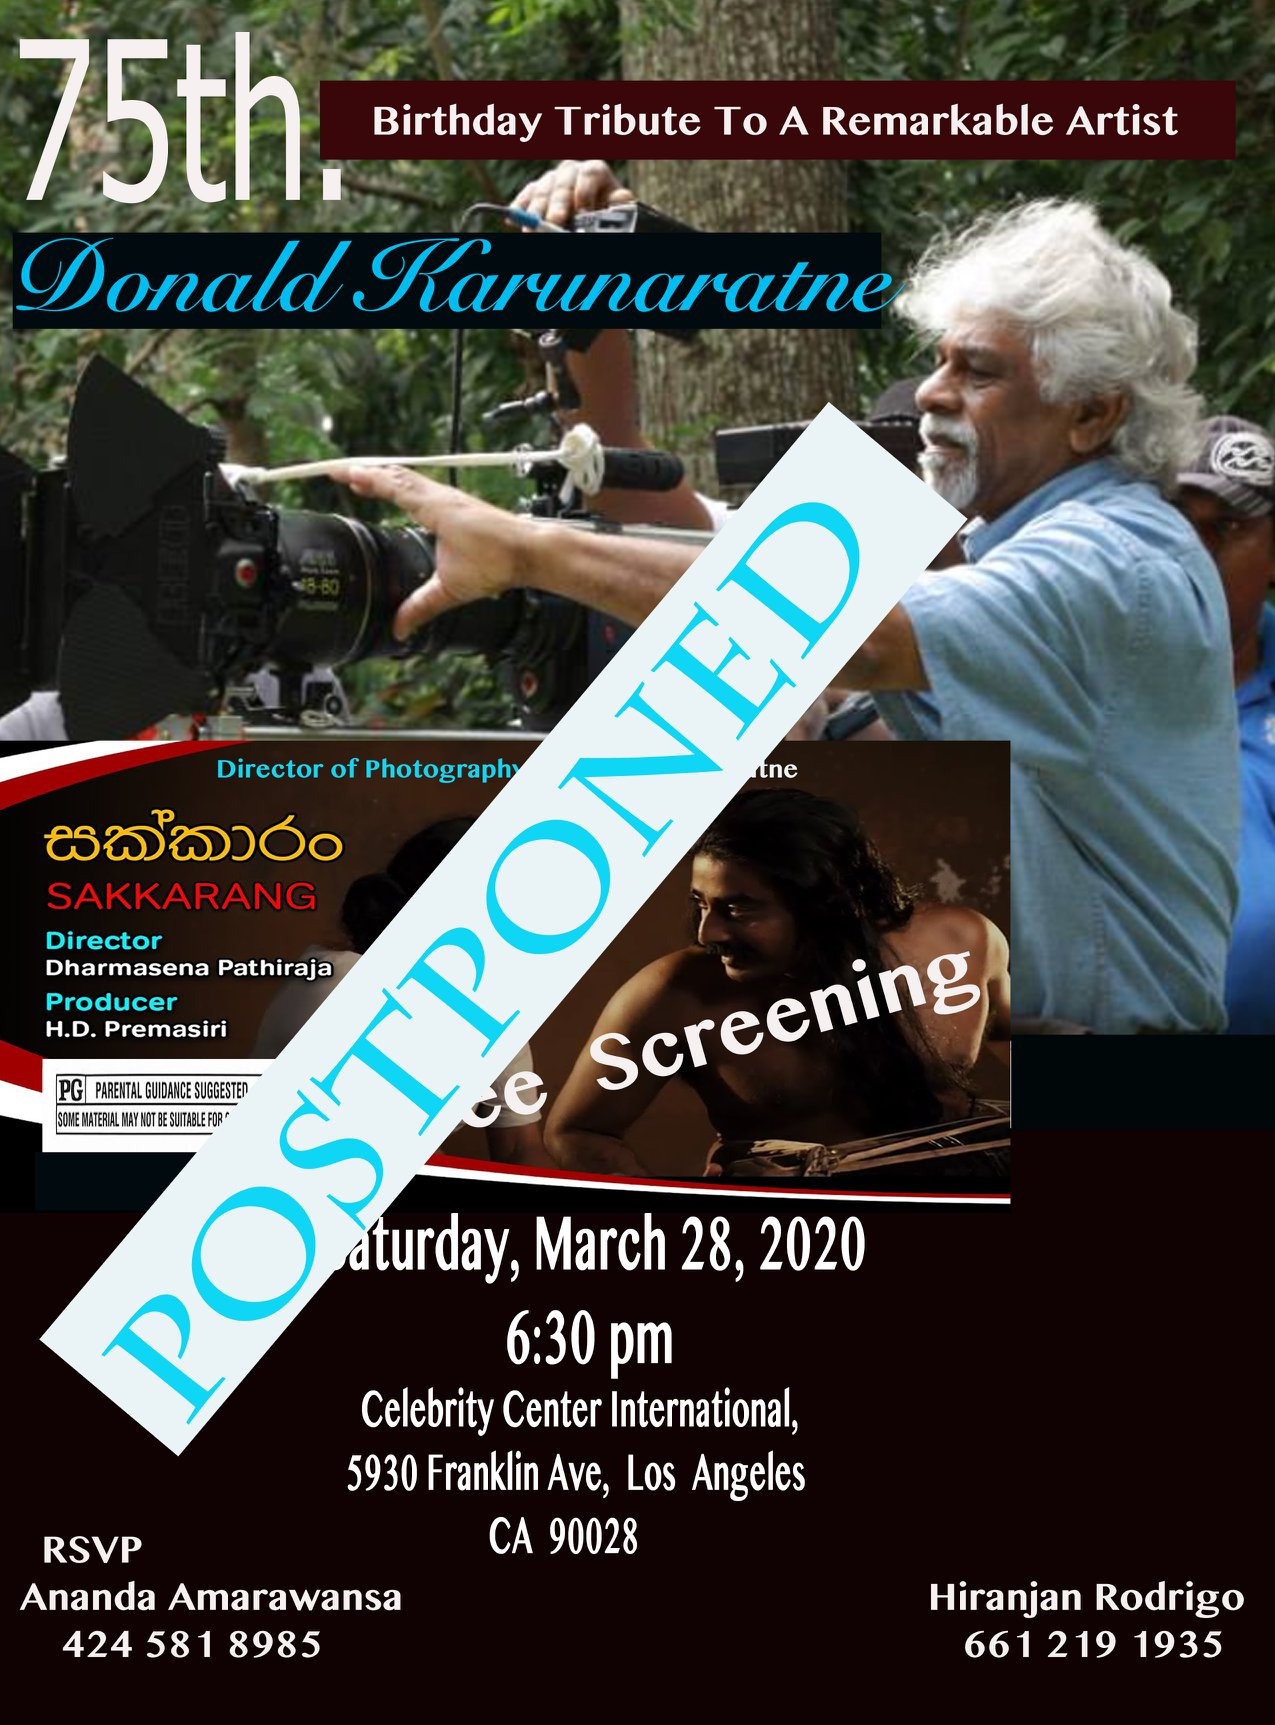 75th Birthday Tribute To A Remarkable Artist - Donald Karunaratne